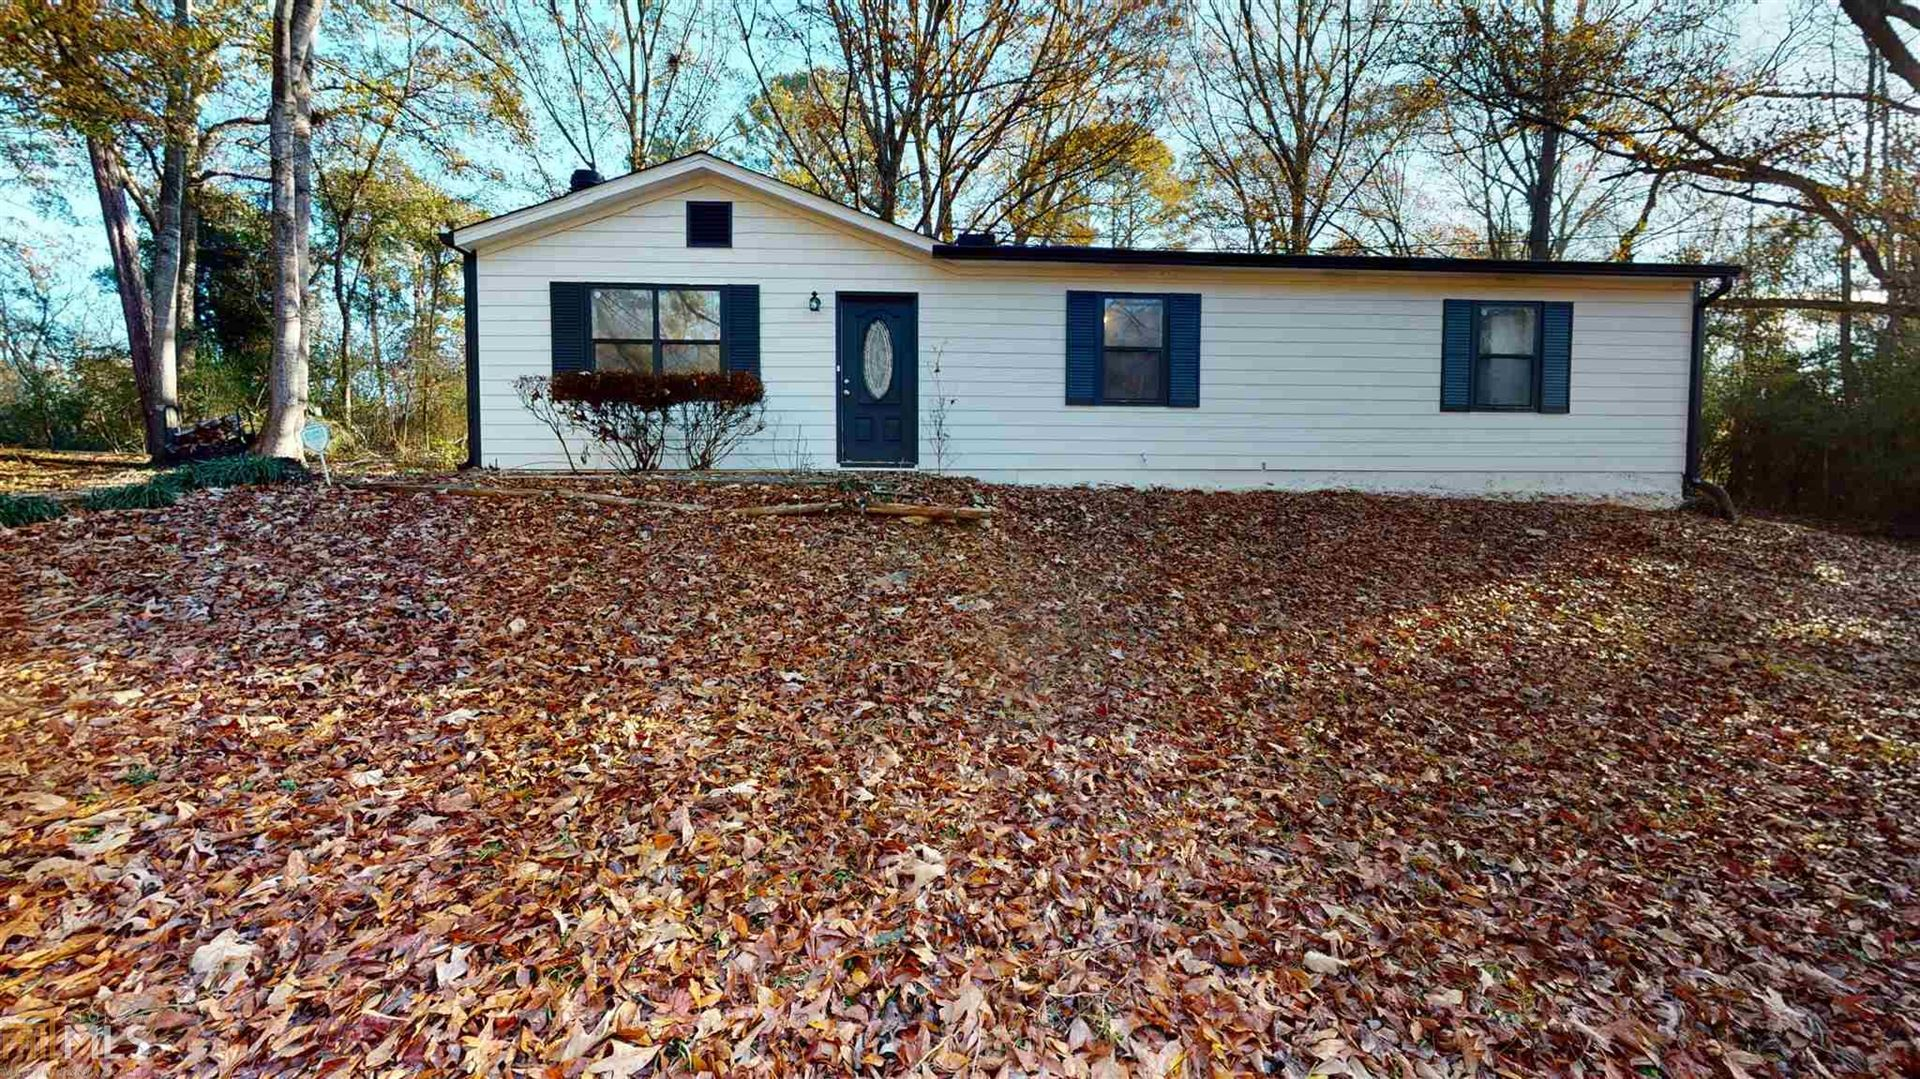 209 Clearview Ct, LaGrange, GA 30241 - #: 8892880